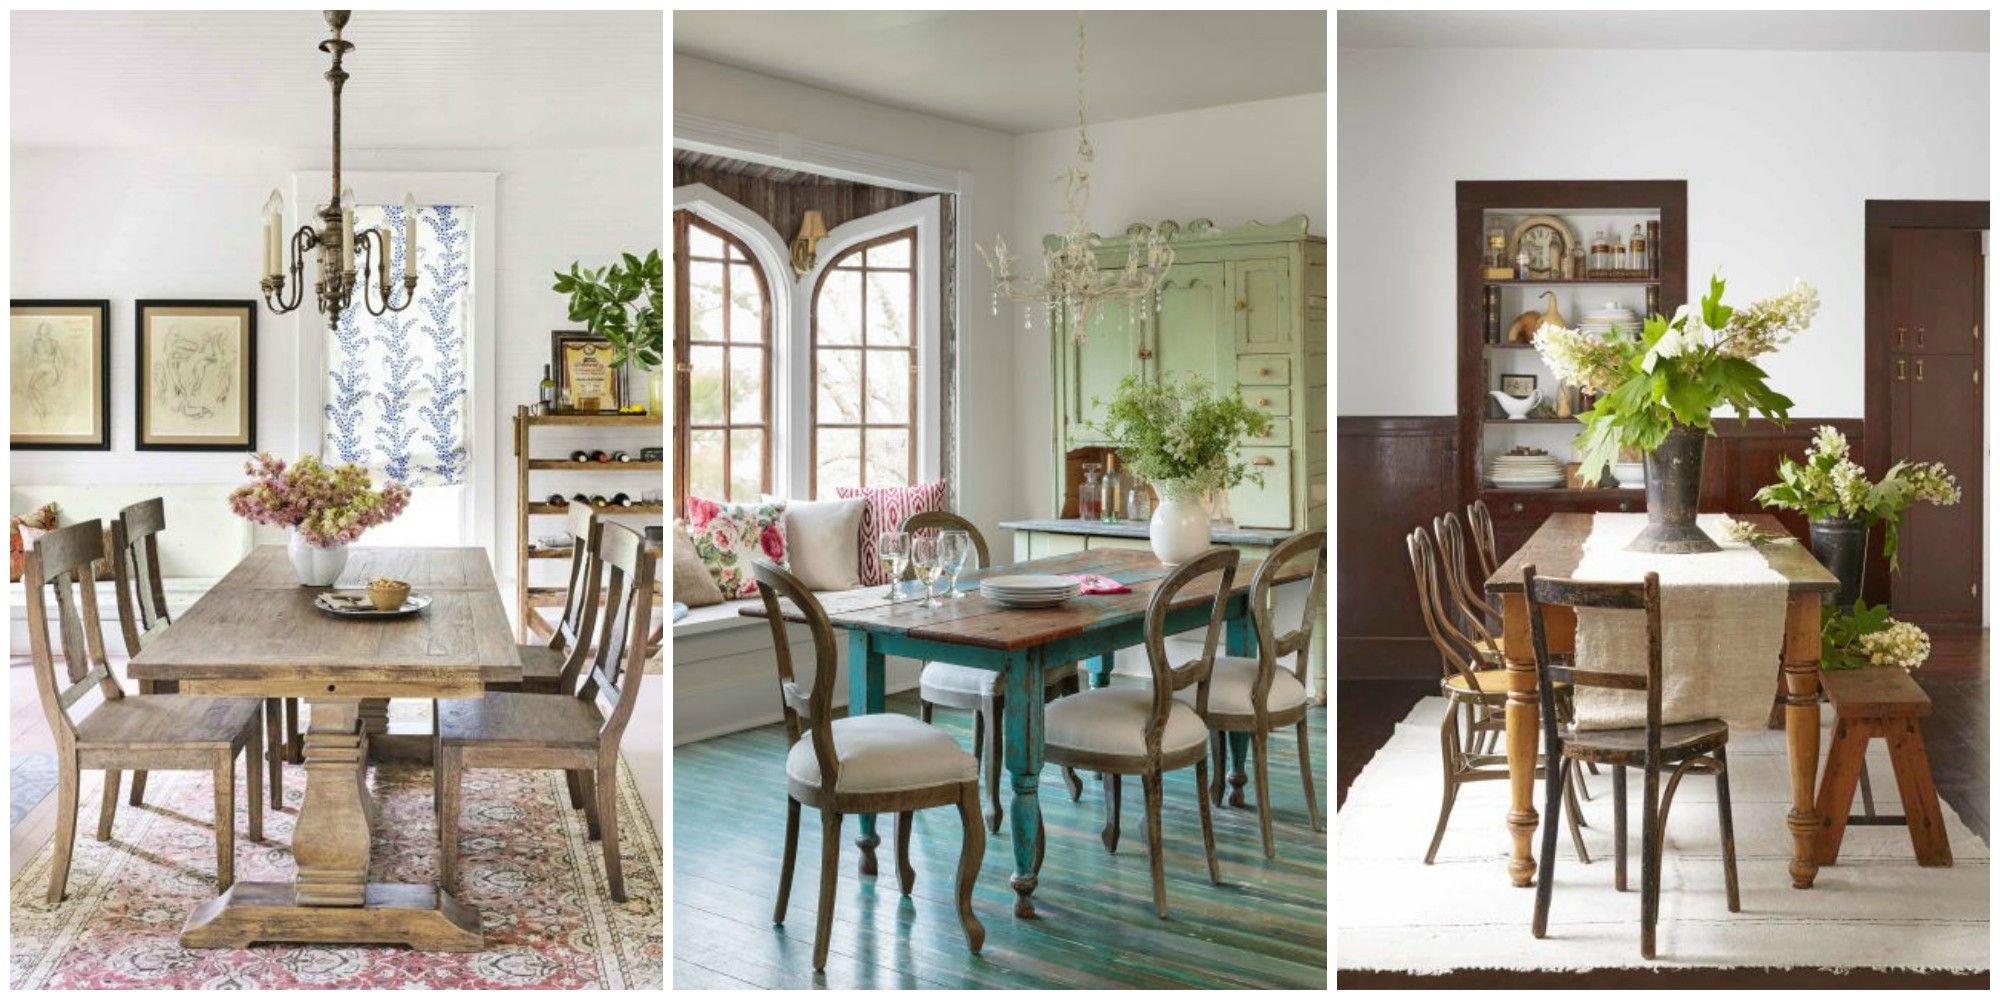 Do Rugs Belong In The Dining Room Or Not